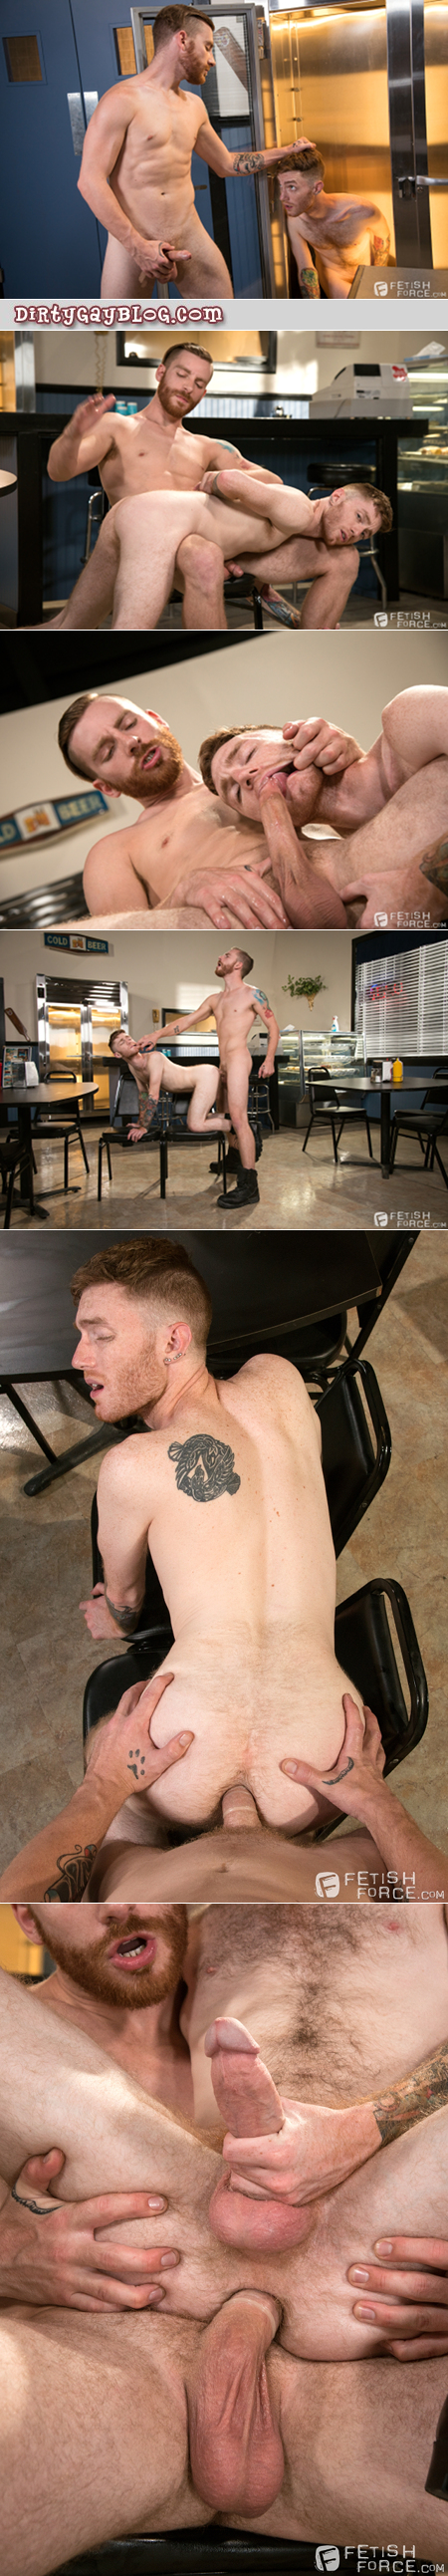 Ginger dom spanks and fucks his redhead male employee.